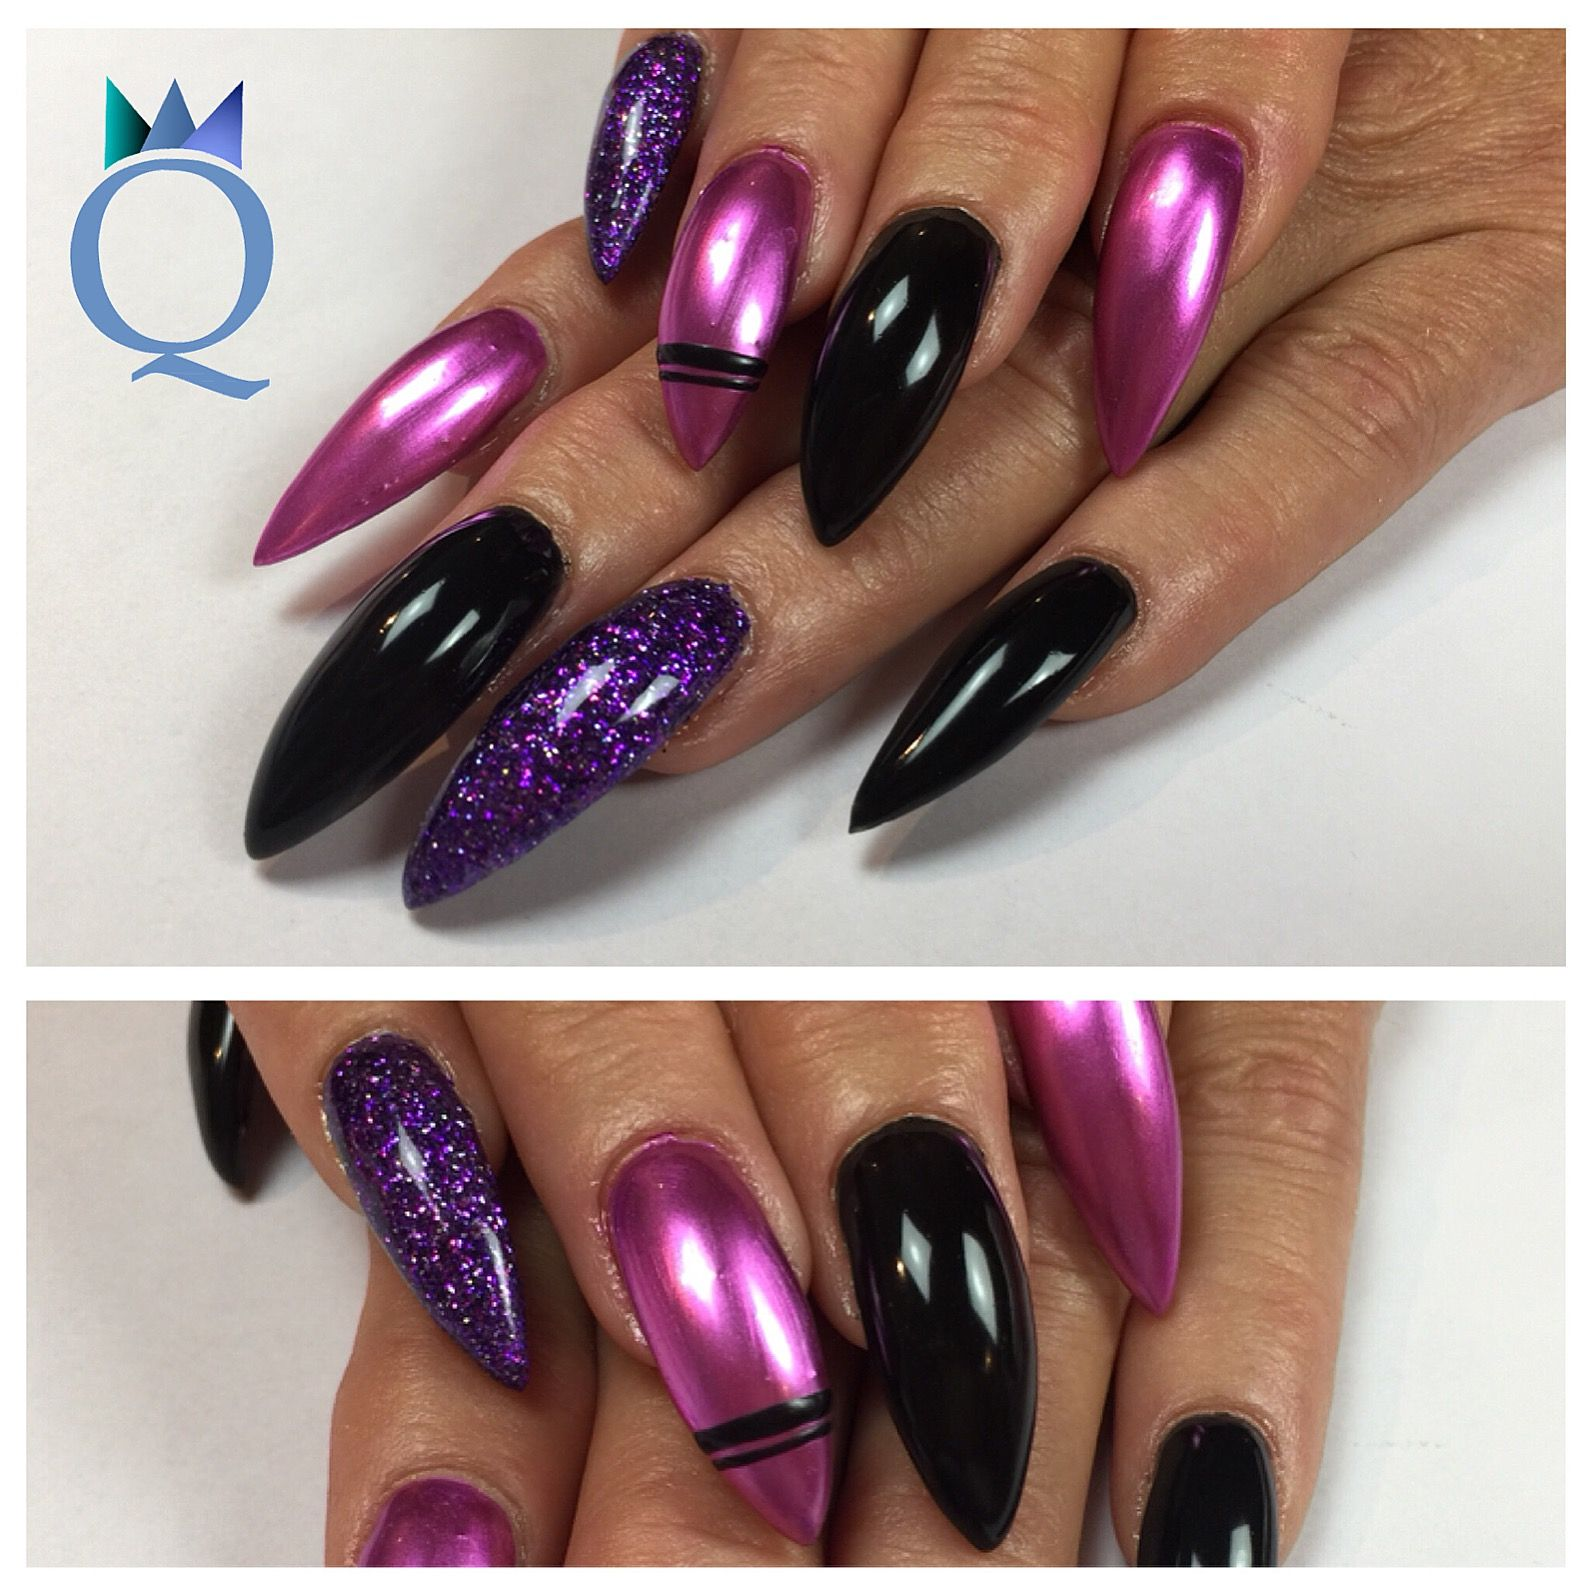 stilettonails #gelnails #nails #purple #glitter #black #pink ...